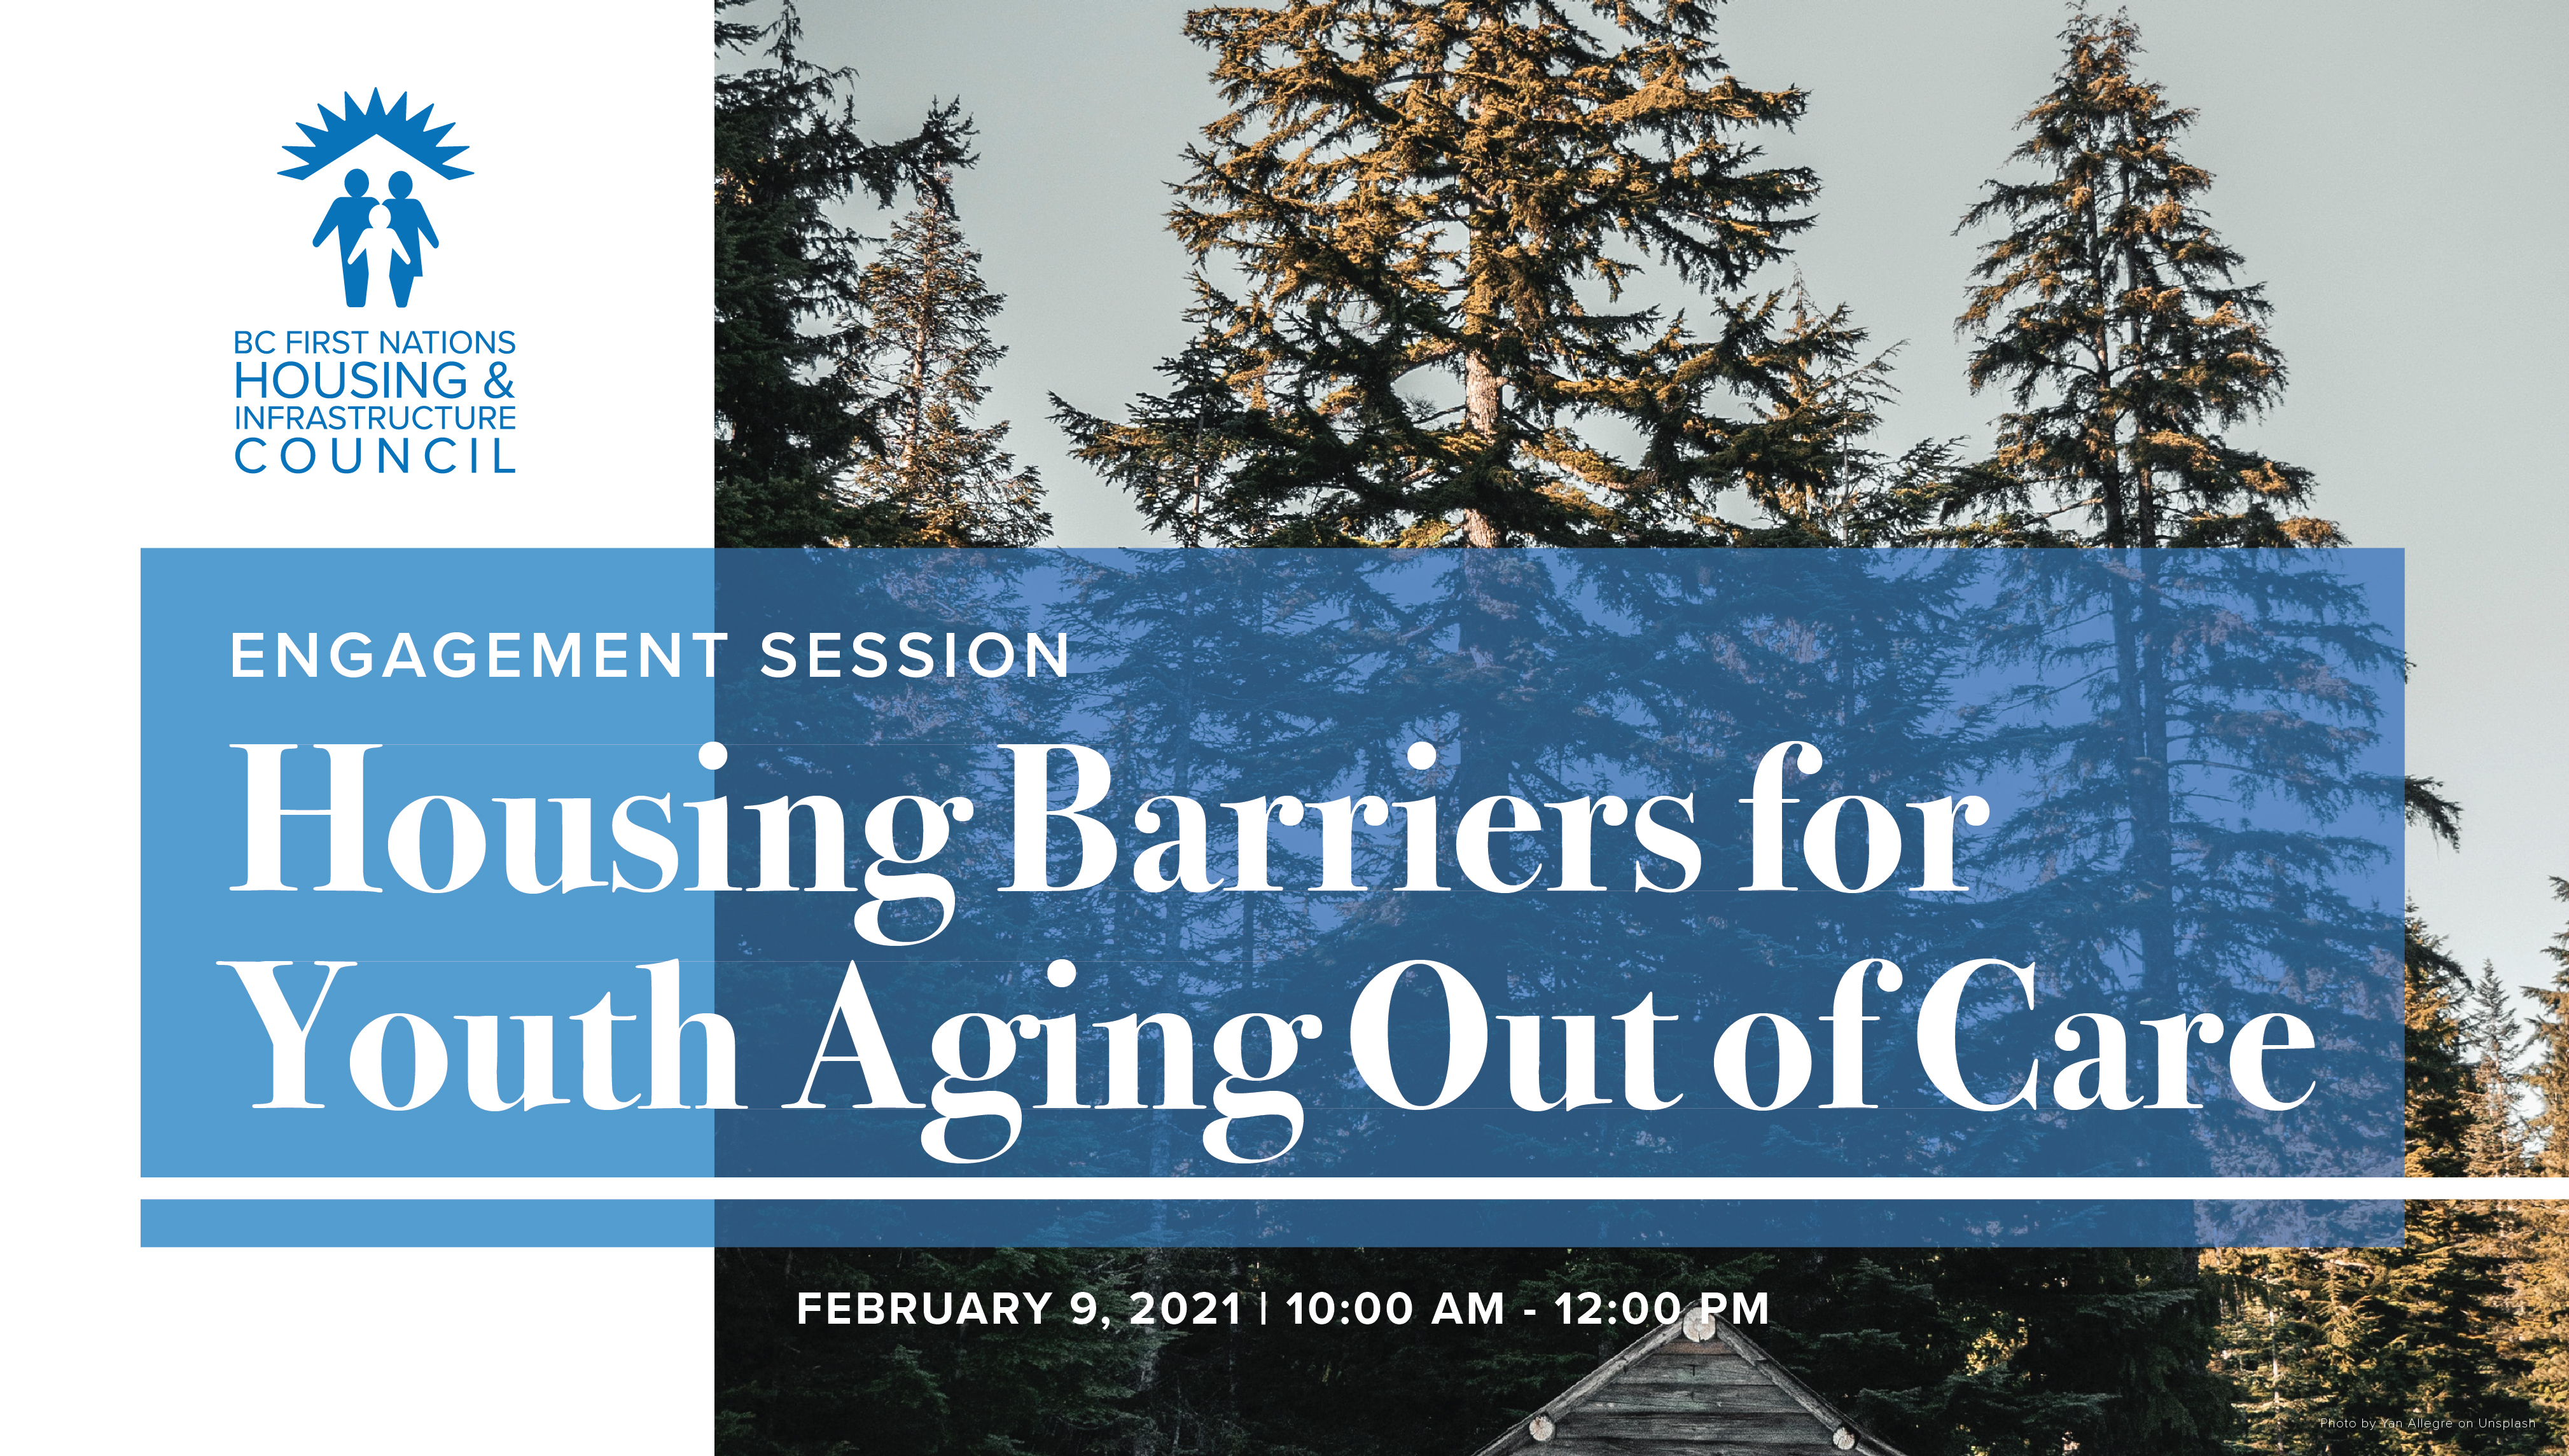 Youth Aging Out of Care